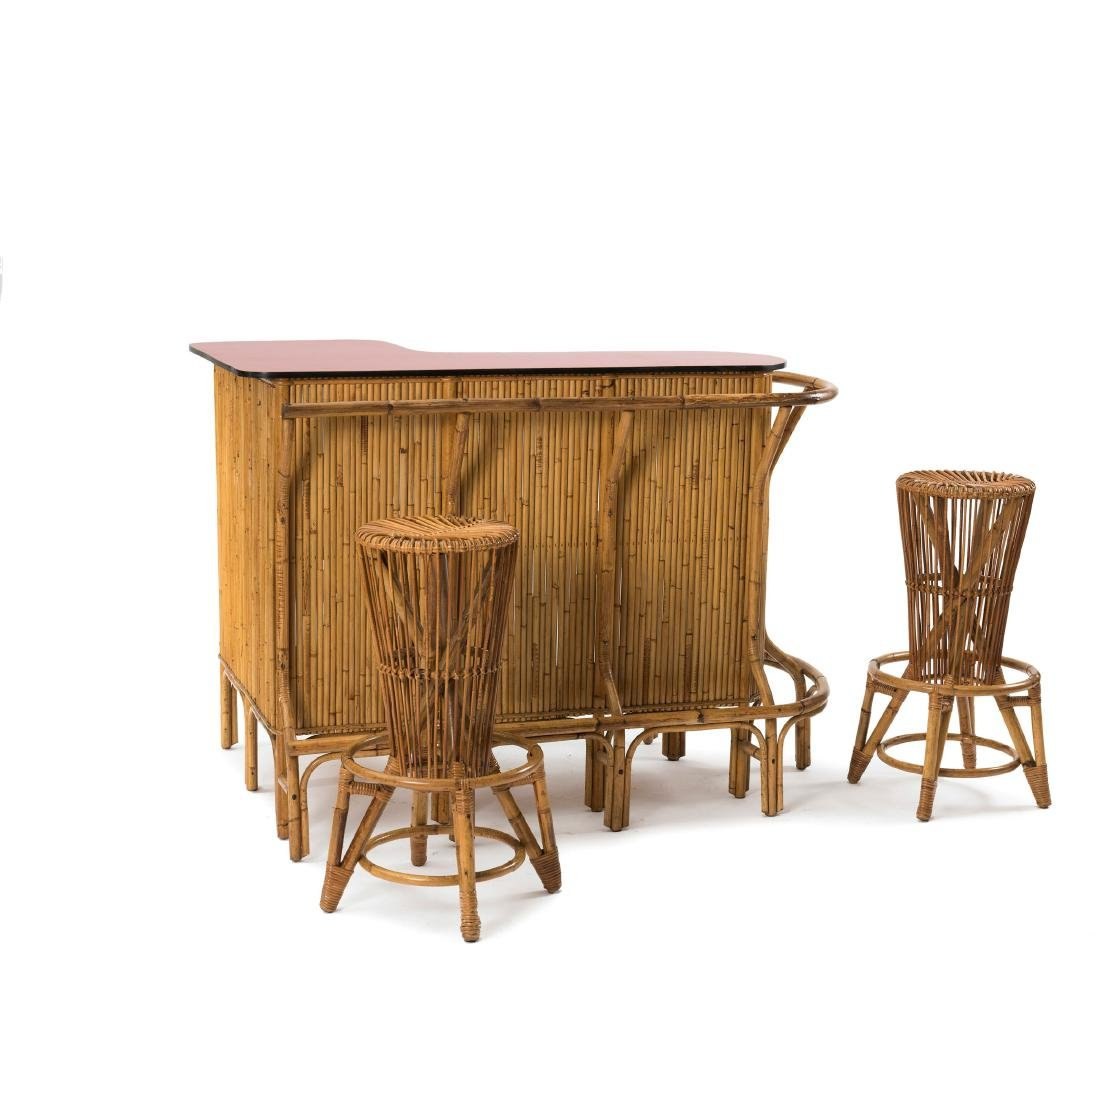 Bar counter with two bar stools, c. 1955